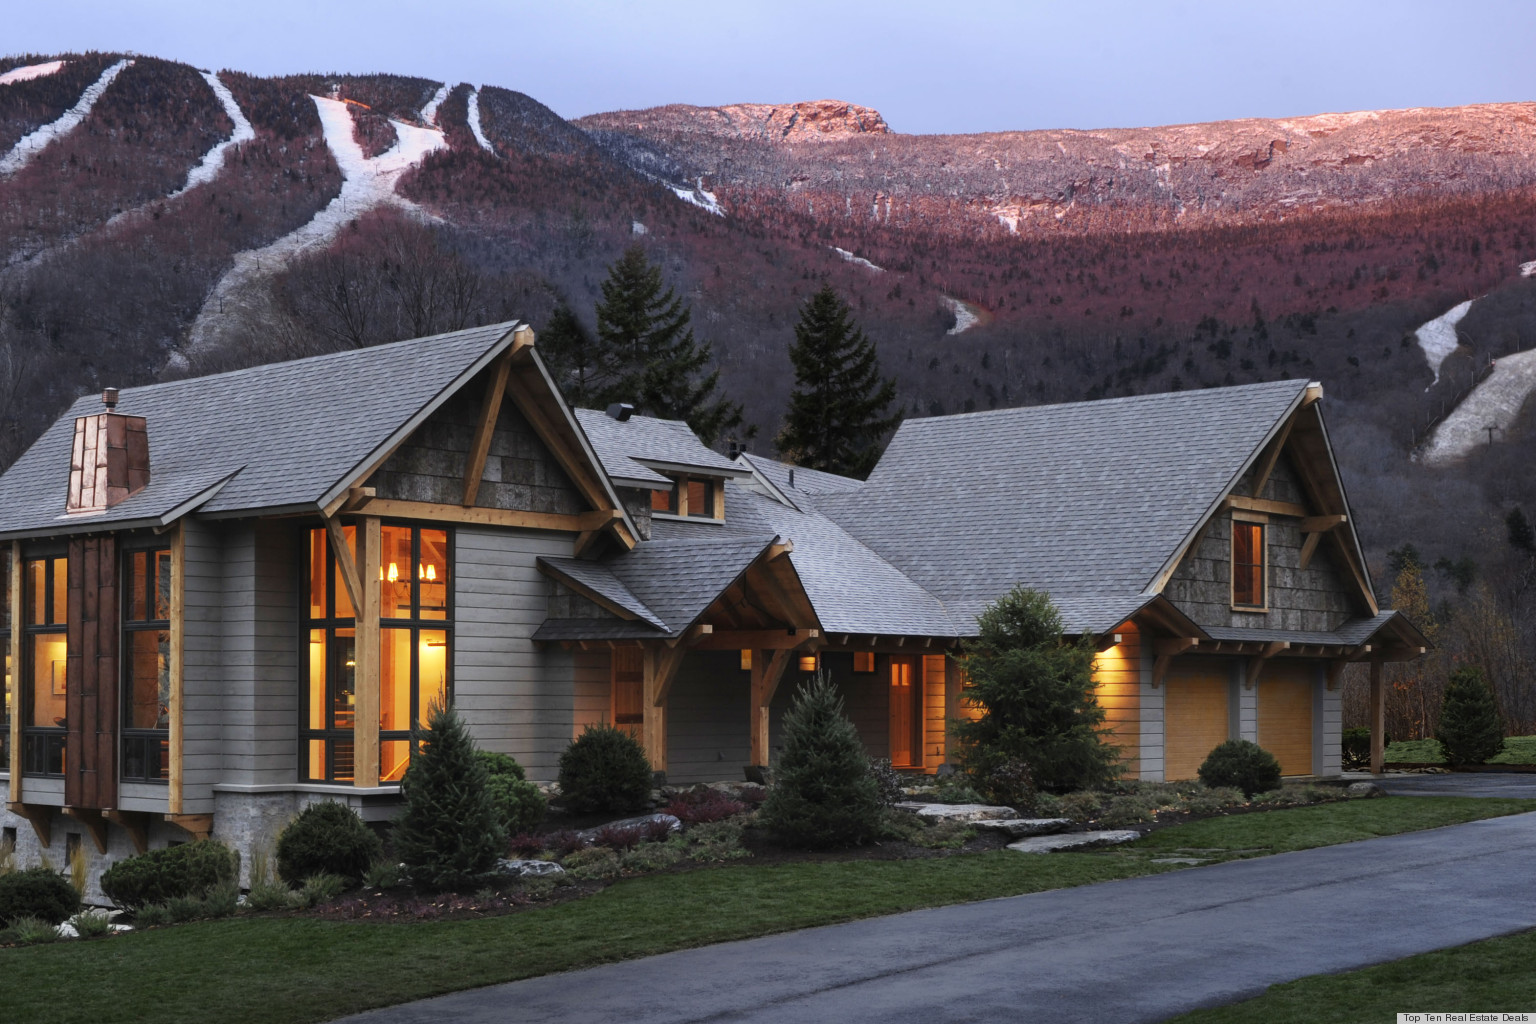 Hgtv dream home 2011 in stowe vermont on sale for 2 995 000 photos video huffpost